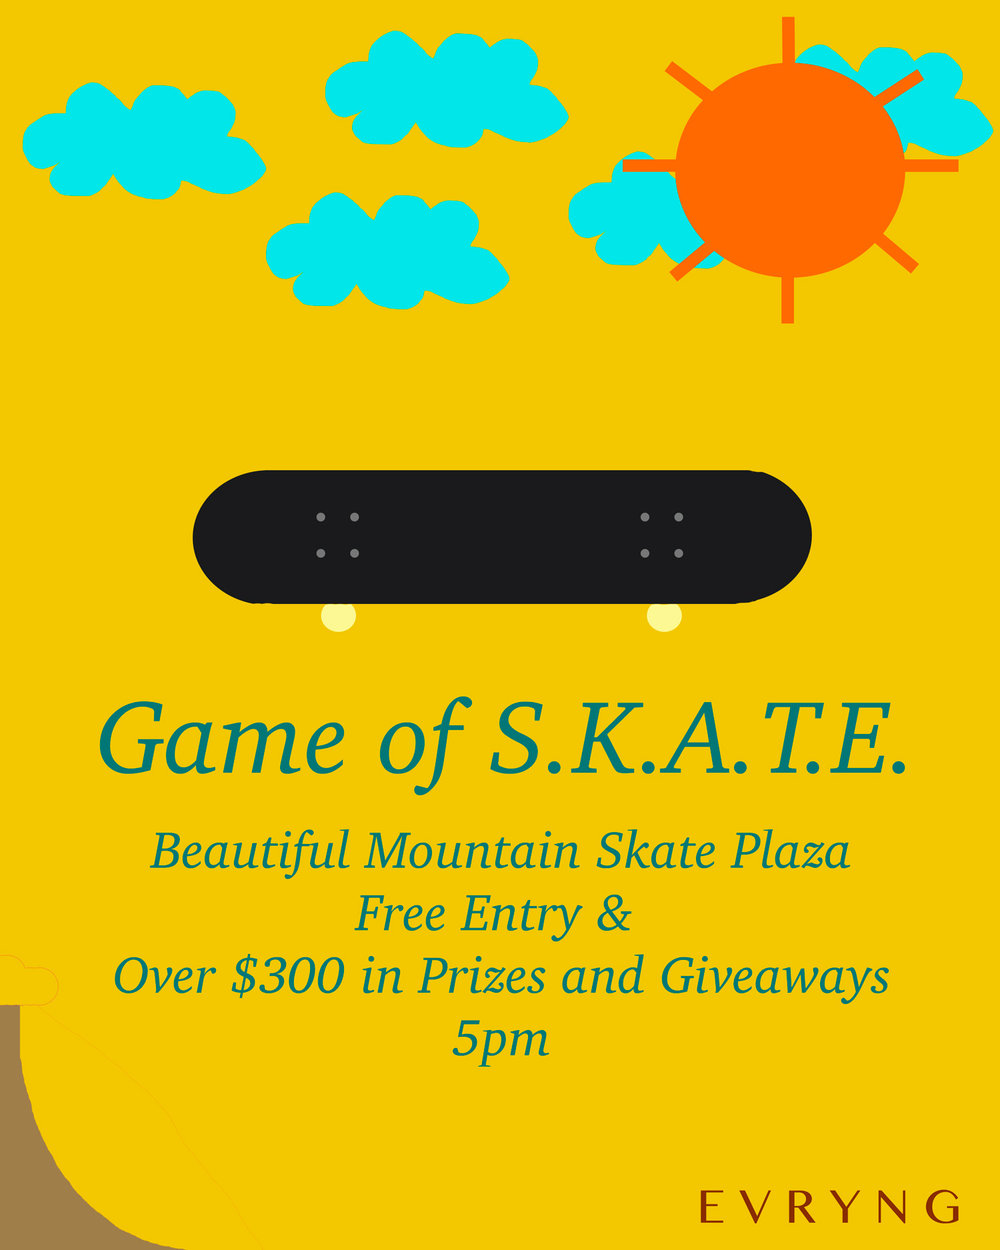 evryng-game-of-skate-flyer-2018.jpg